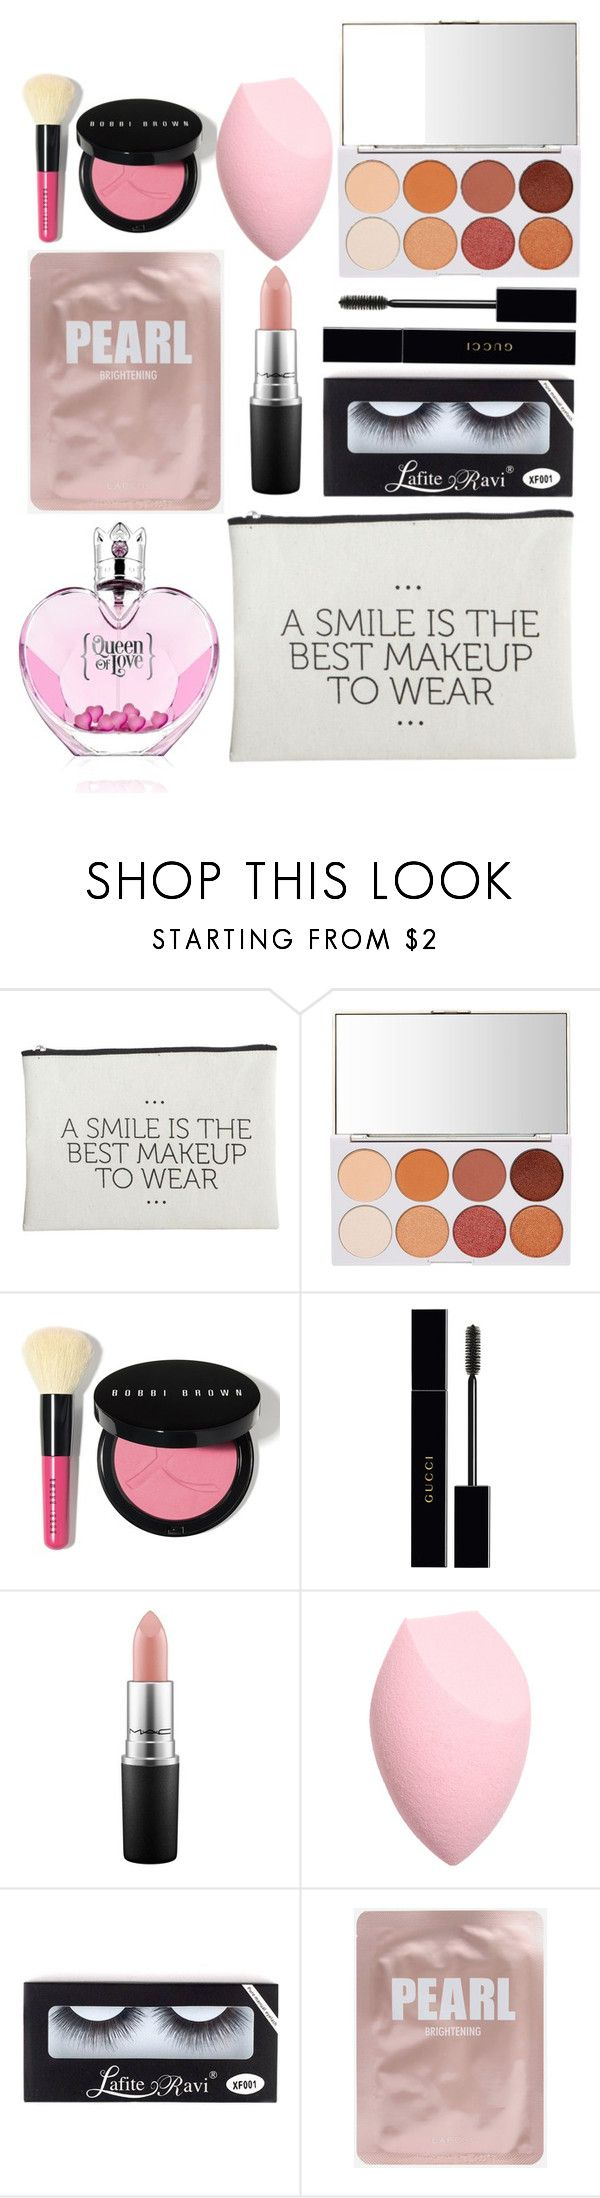 """Whats in my makeup bag!!!"" by reanna-fisk ❤ liked on Polyvore featuring beauty, House Doctor, Bobbi Brown Cosmetics, Gucci and MAC Cosmetics"